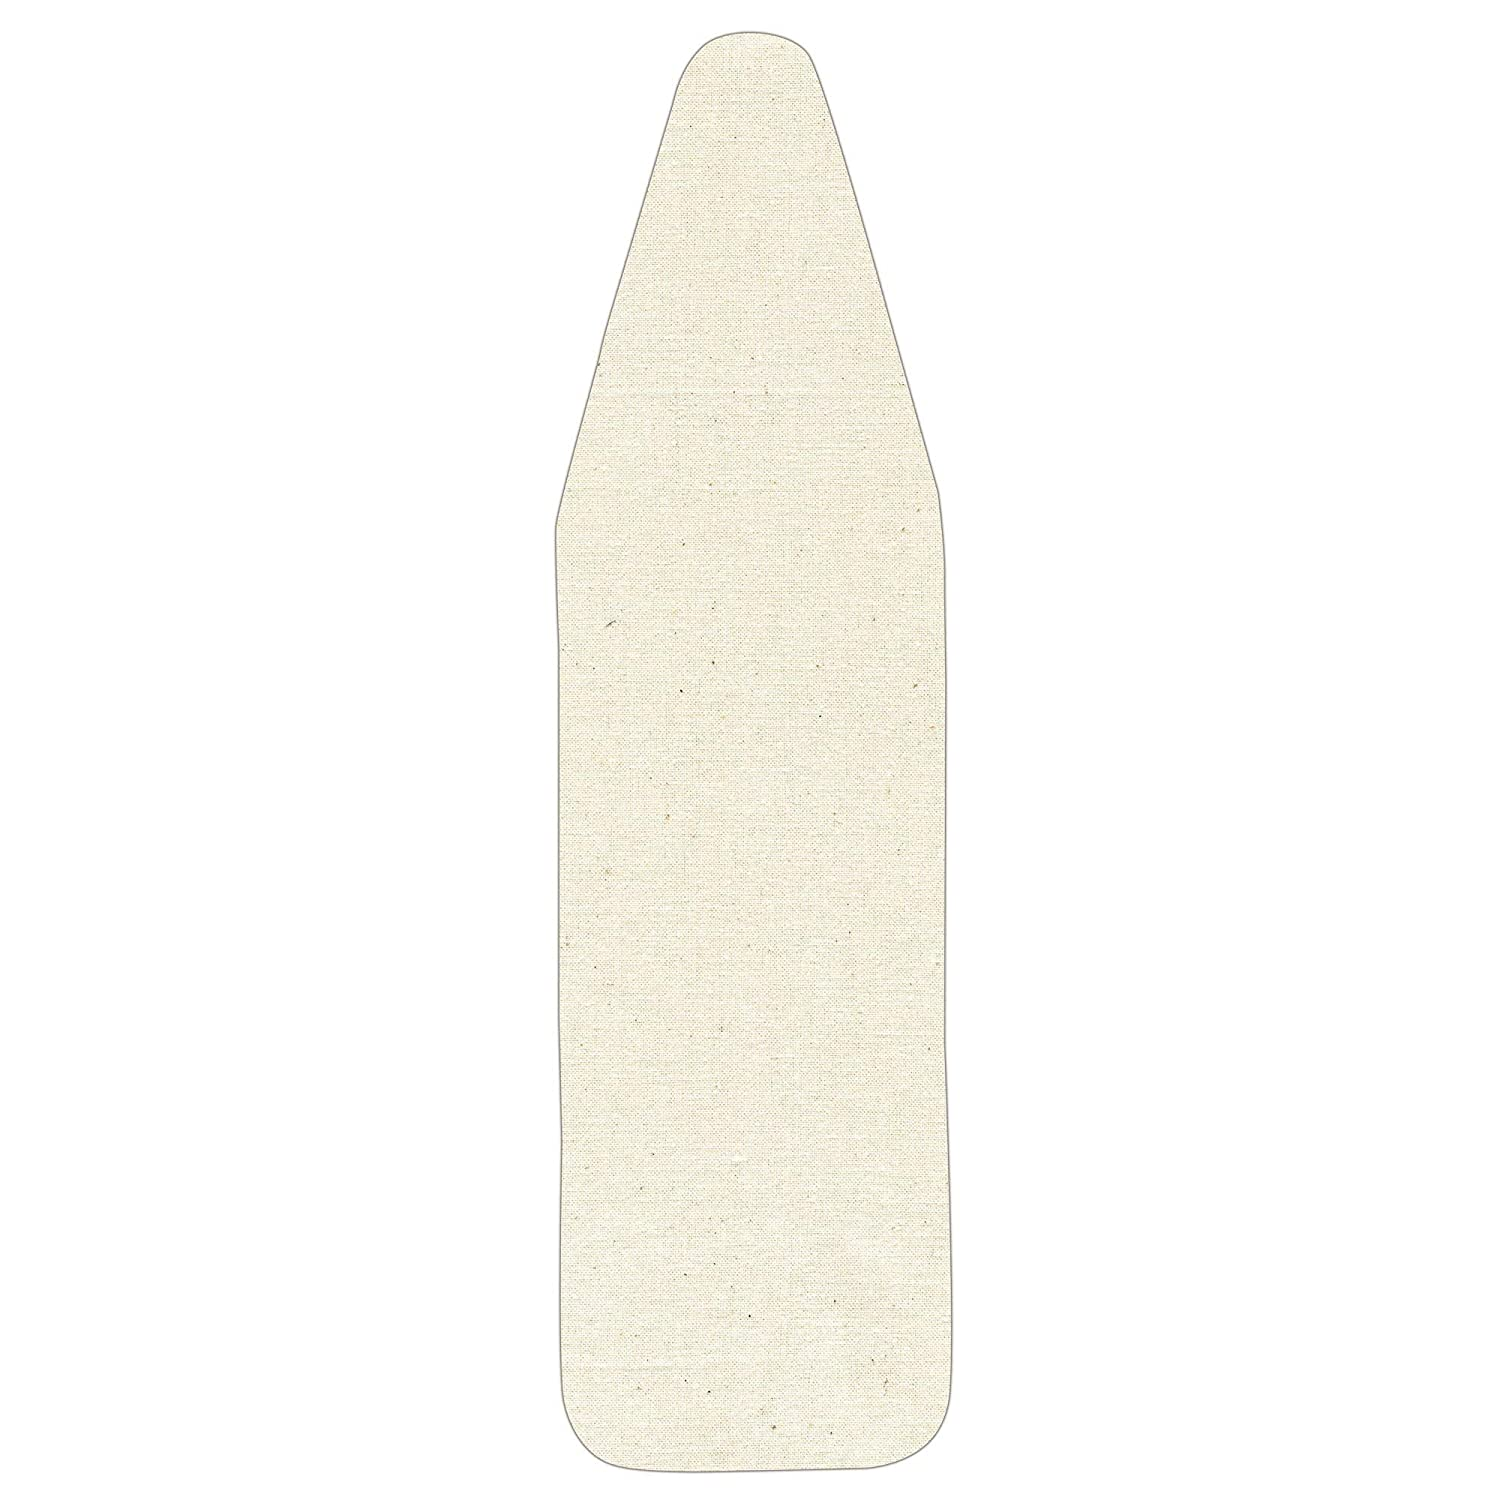 Household Essentials 7347 Replacement Pad and Cover for Wide-Top Ironing Board | Natural Cotton Canvas